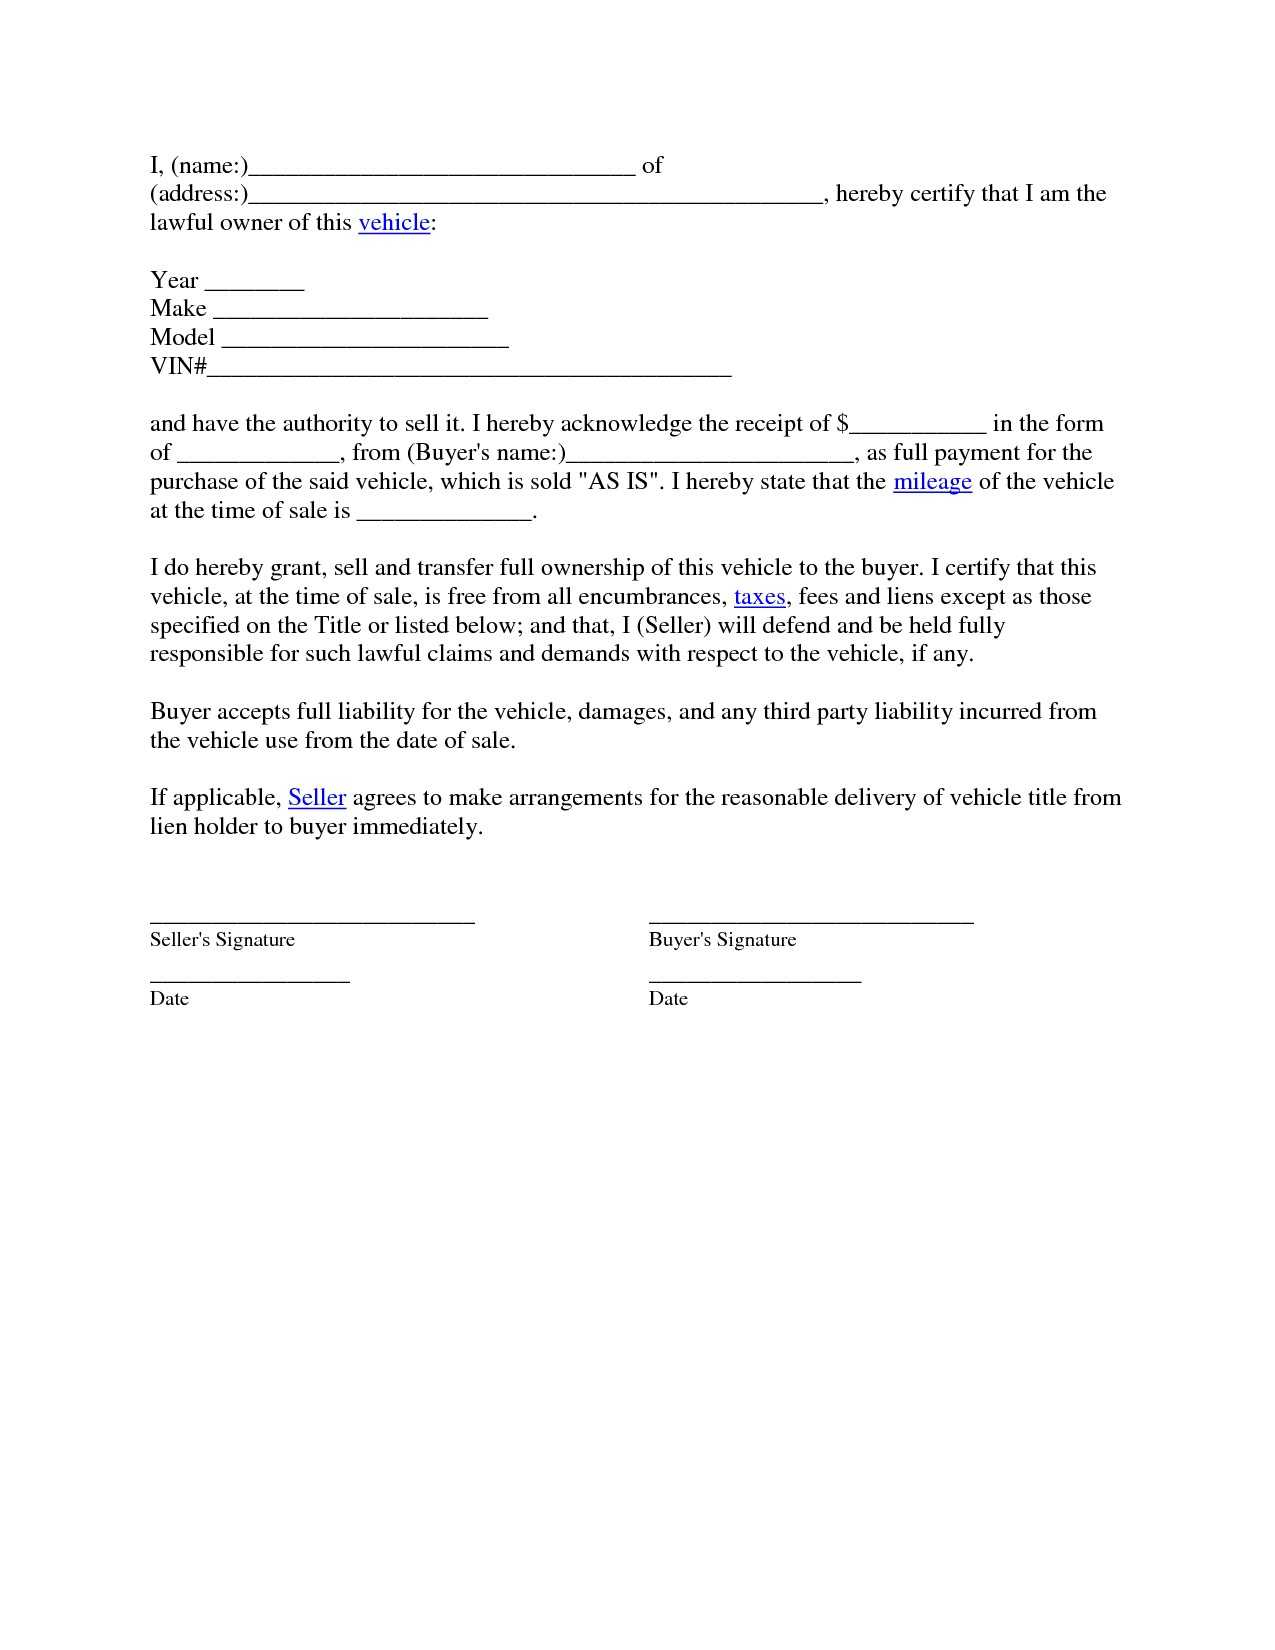 Personal Loan Letter Template - Sample Personal Loan Agreement Lovely Auto Purchase Agreement